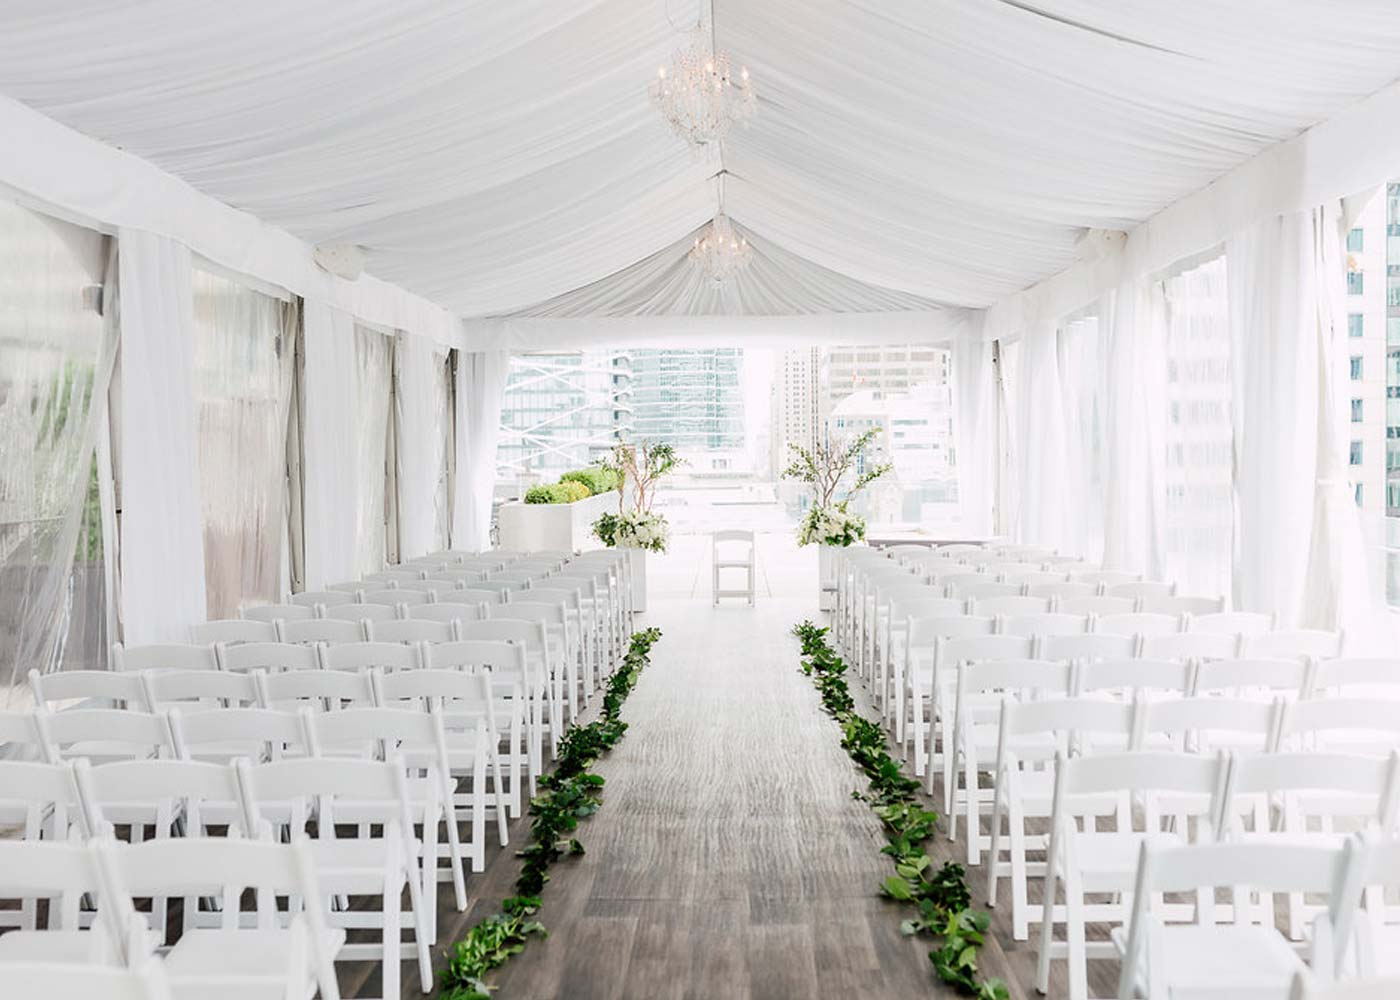 Toronto Wedding Venue - rooftop ceremony at Malaparte